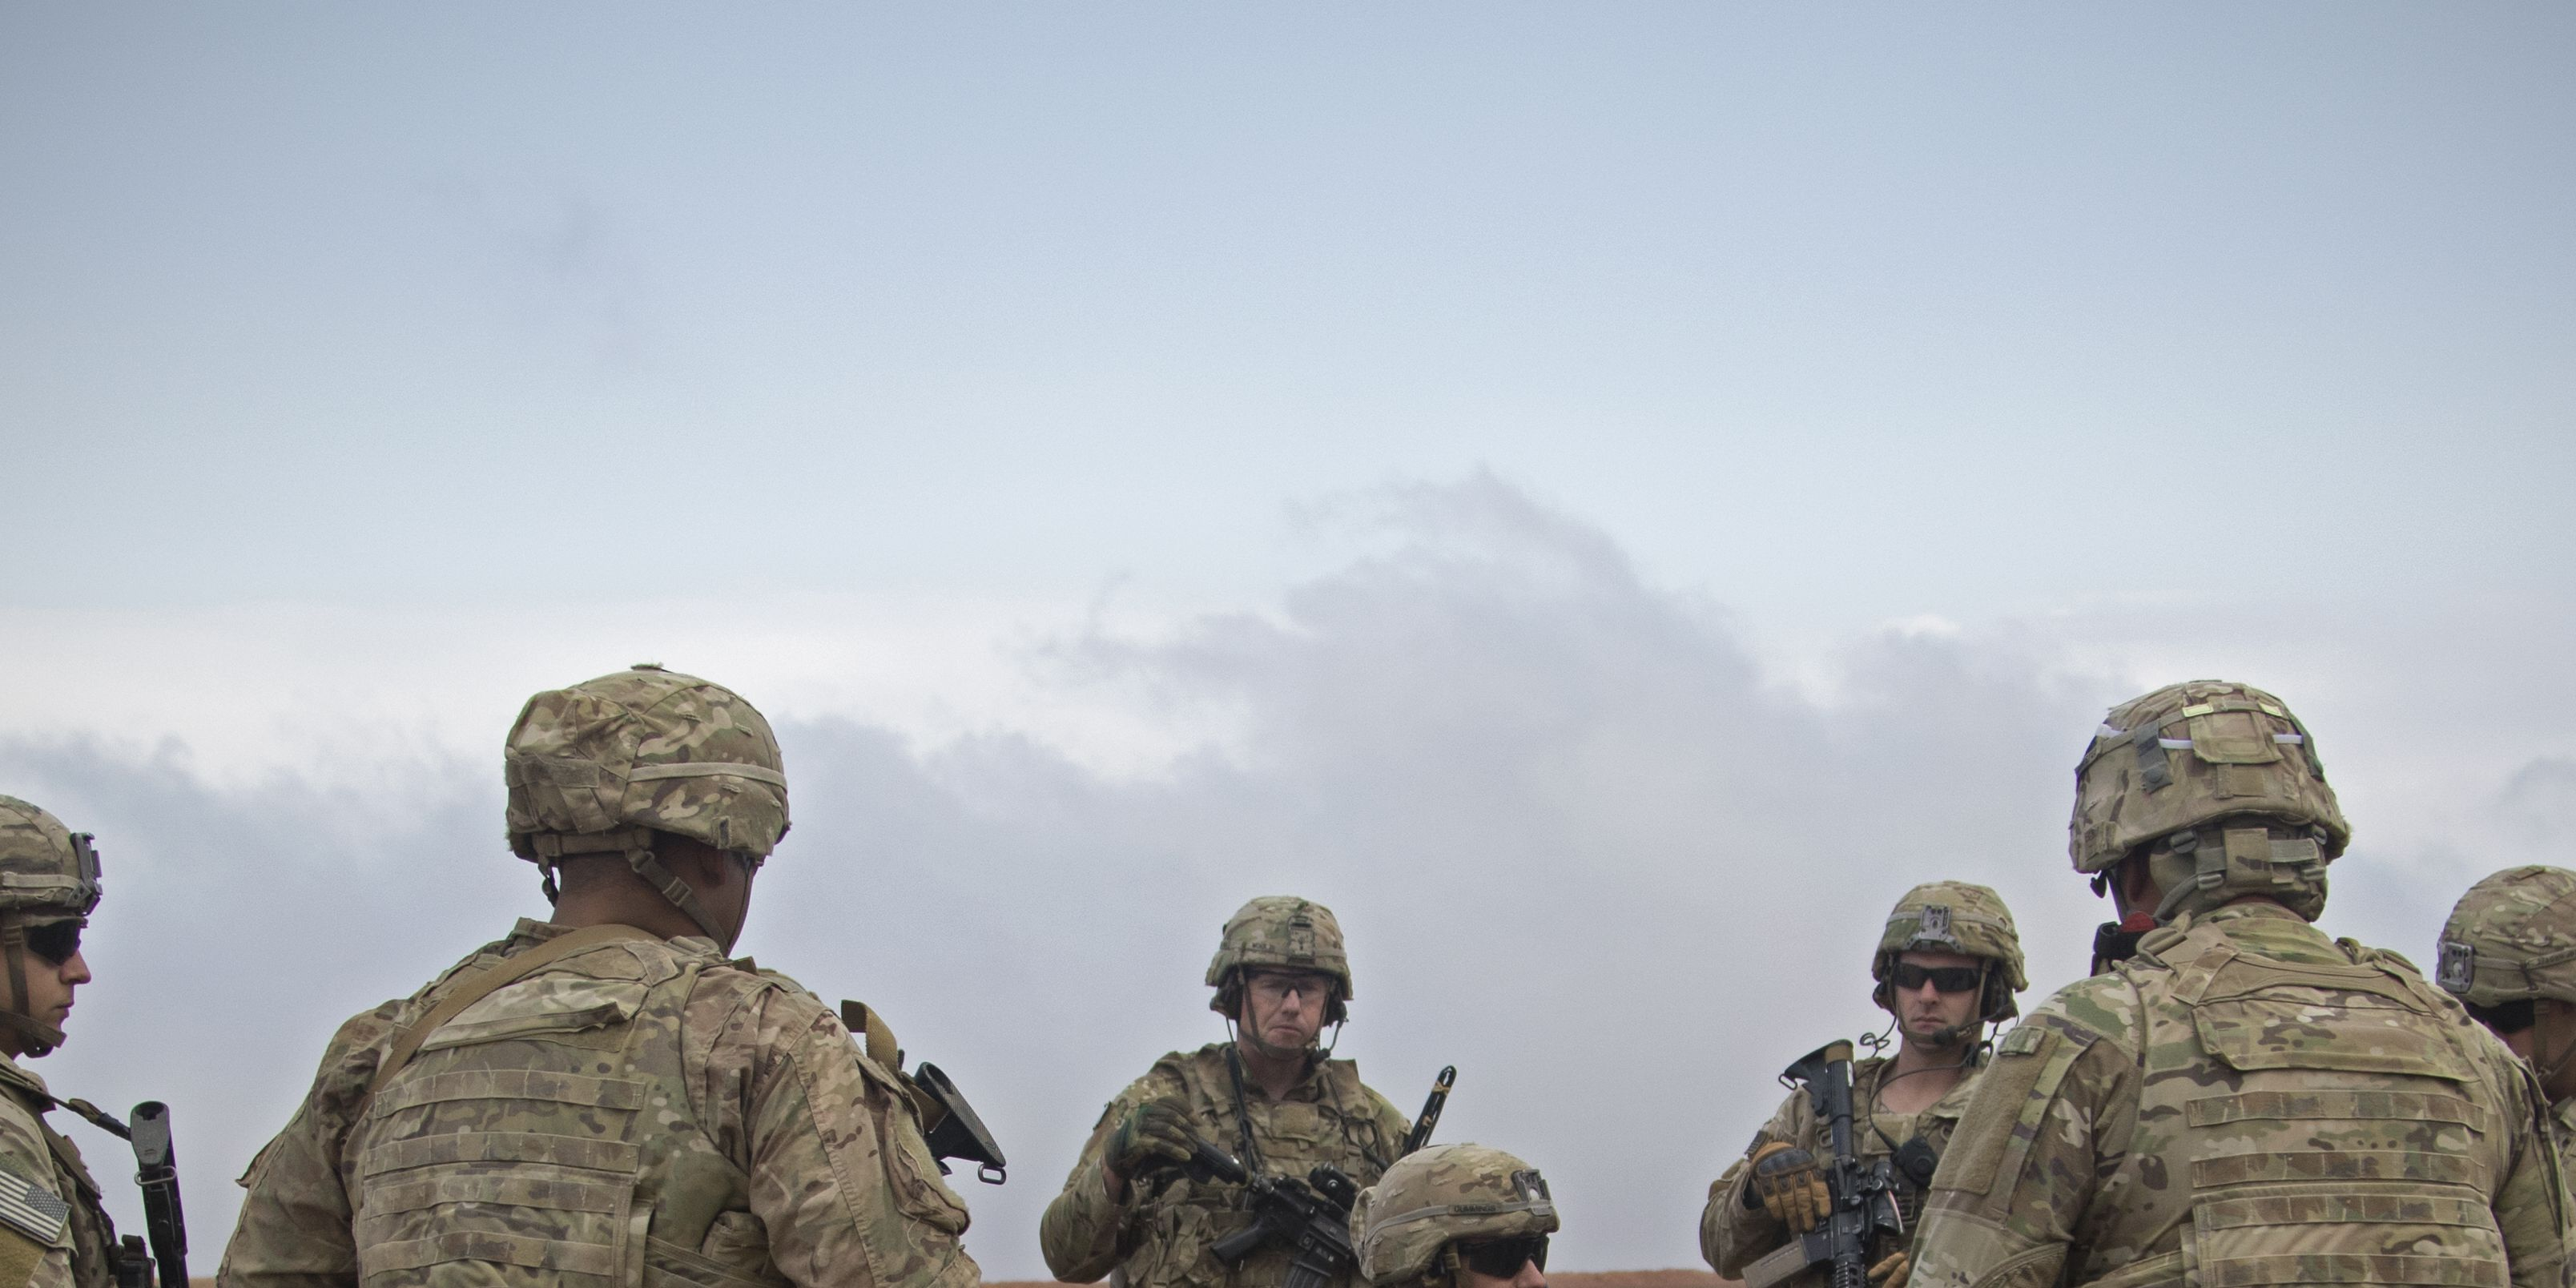 White House says 200 American troops will remain in Syria